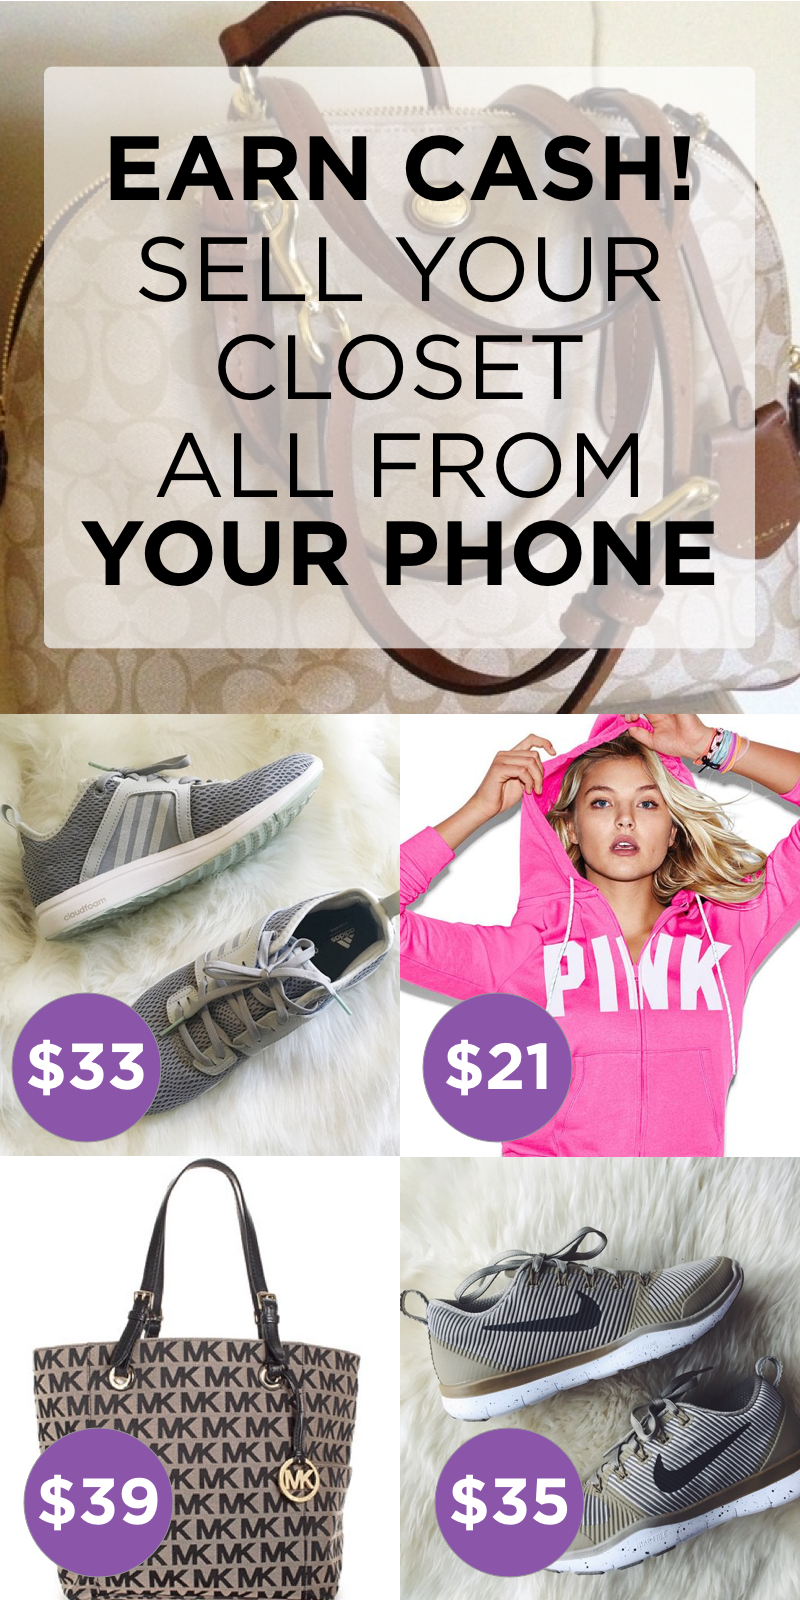 Install Poshmark now and Sell your Closet all from your